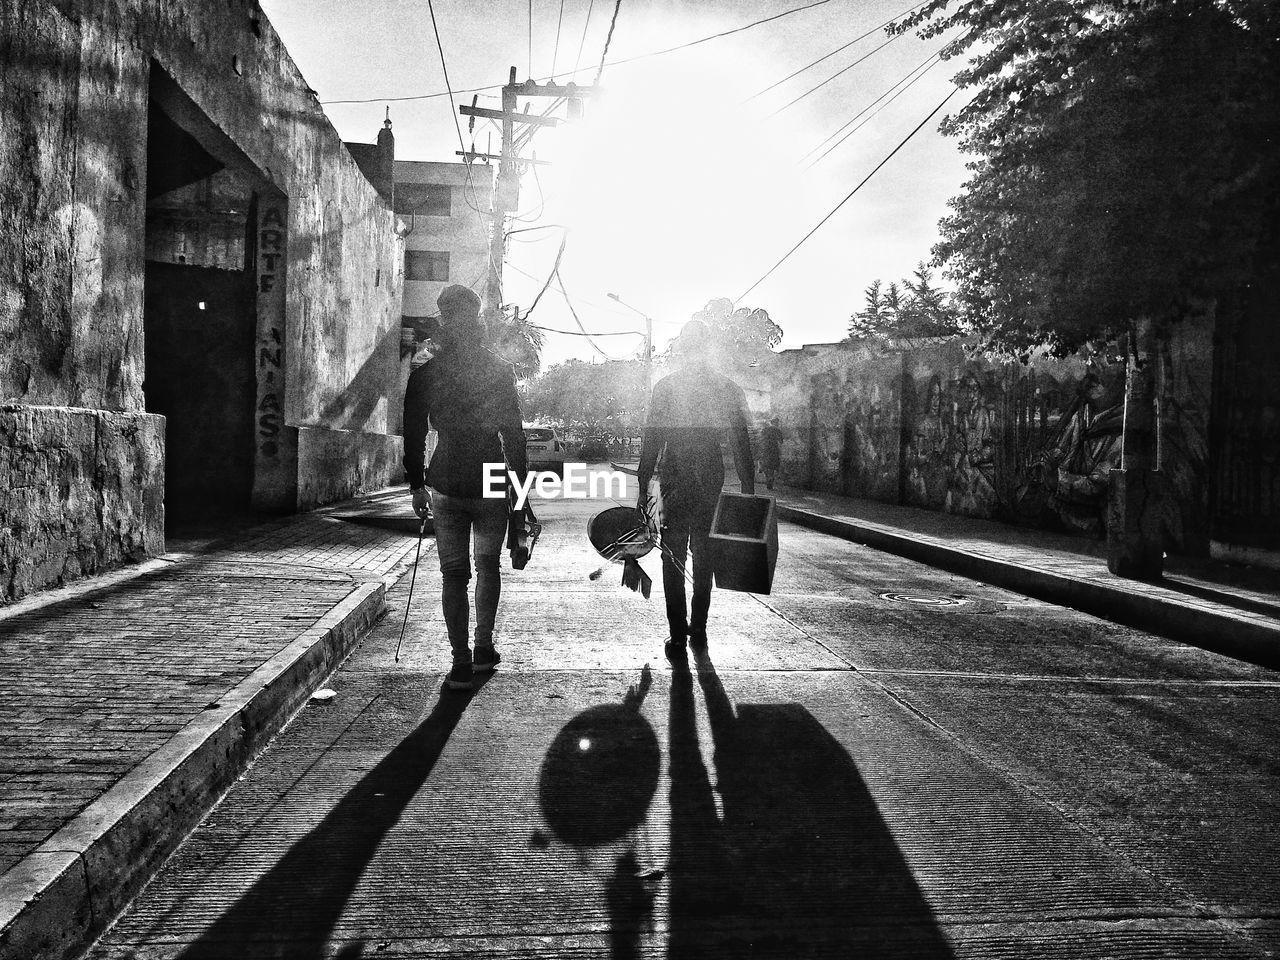 real people, full length, architecture, men, transportation, shadow, nature, sunlight, two people, built structure, walking, building exterior, city, day, rear view, lifestyles, people, footpath, tree, street, outdoors